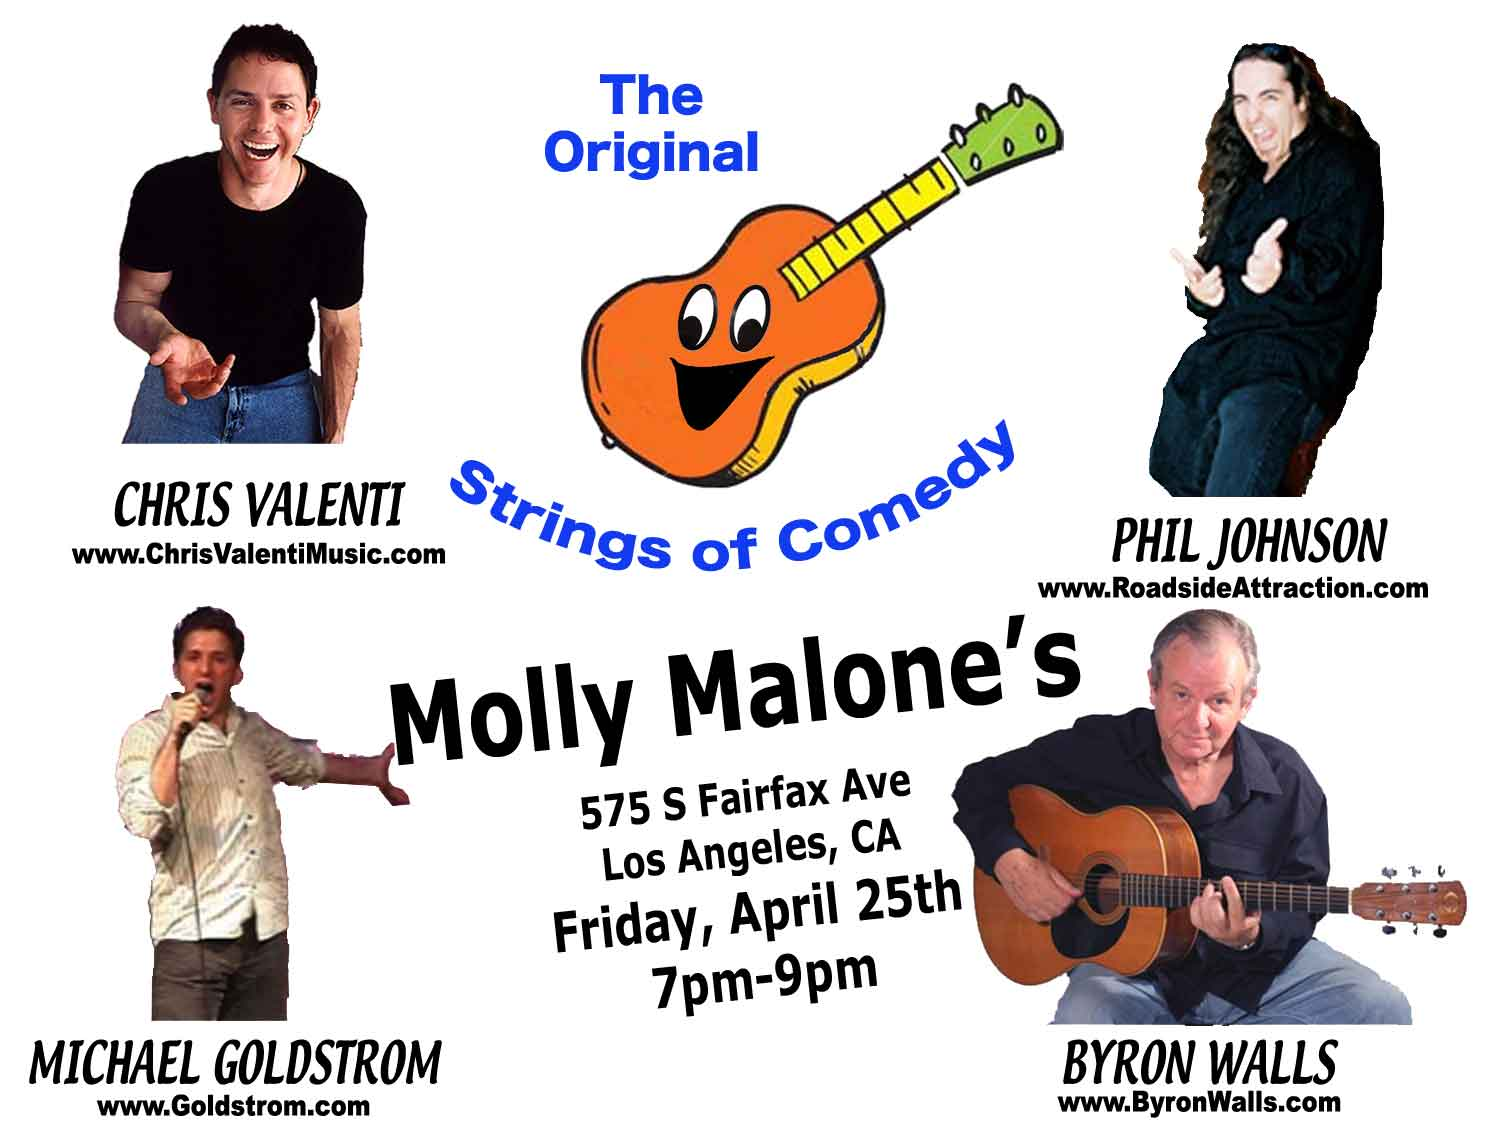 This Week's Strings of Comedy Show includes Chris Valenti, Phil Johnson, Byron Walls, and Michael Goldstrom.